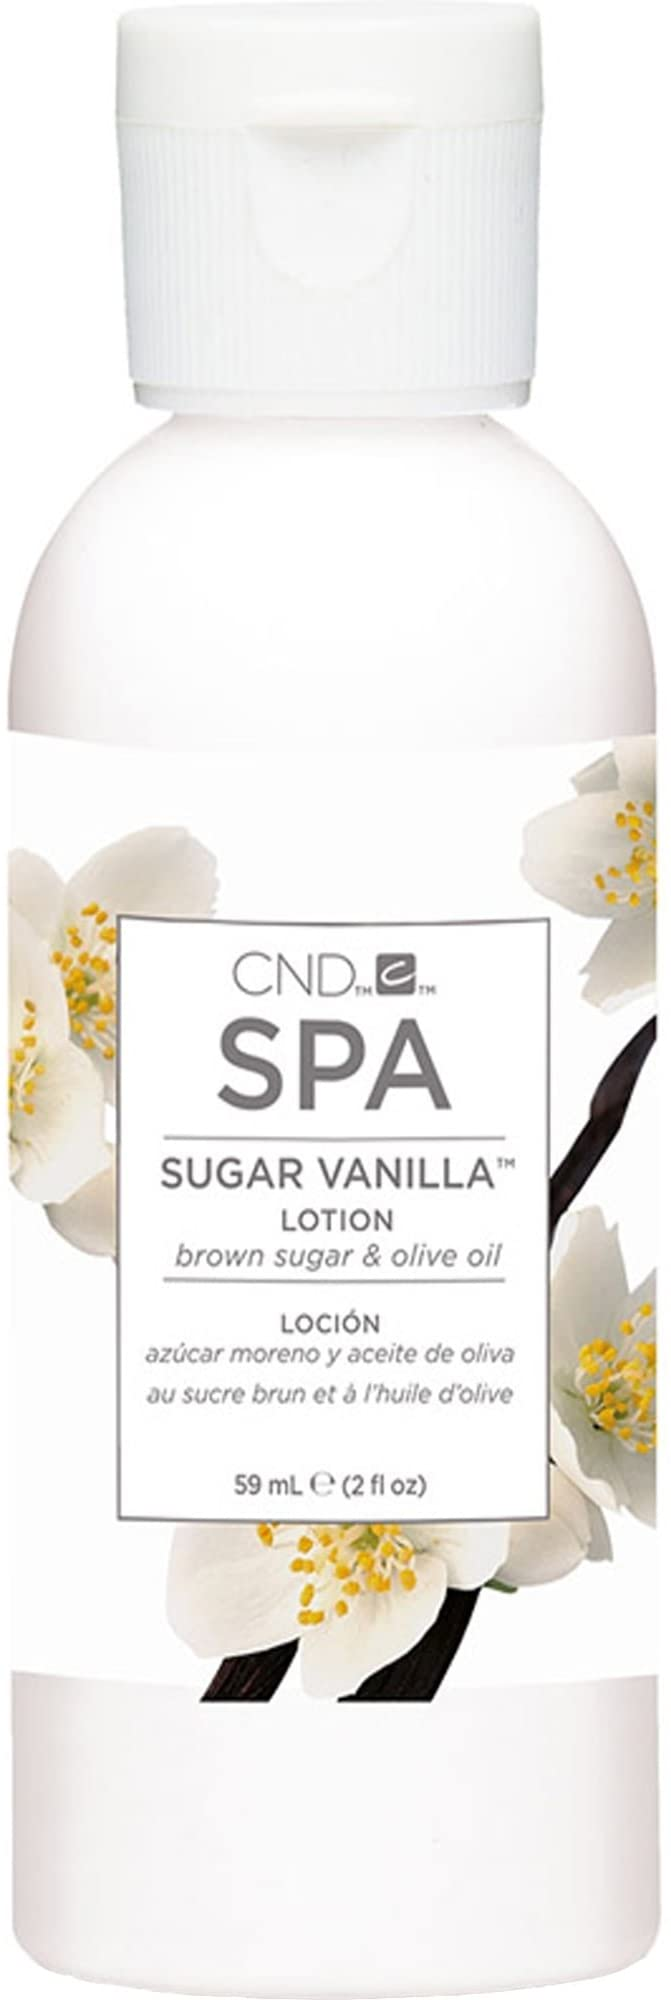 CND Spa - Sugar Vanilla Lotion 59ml